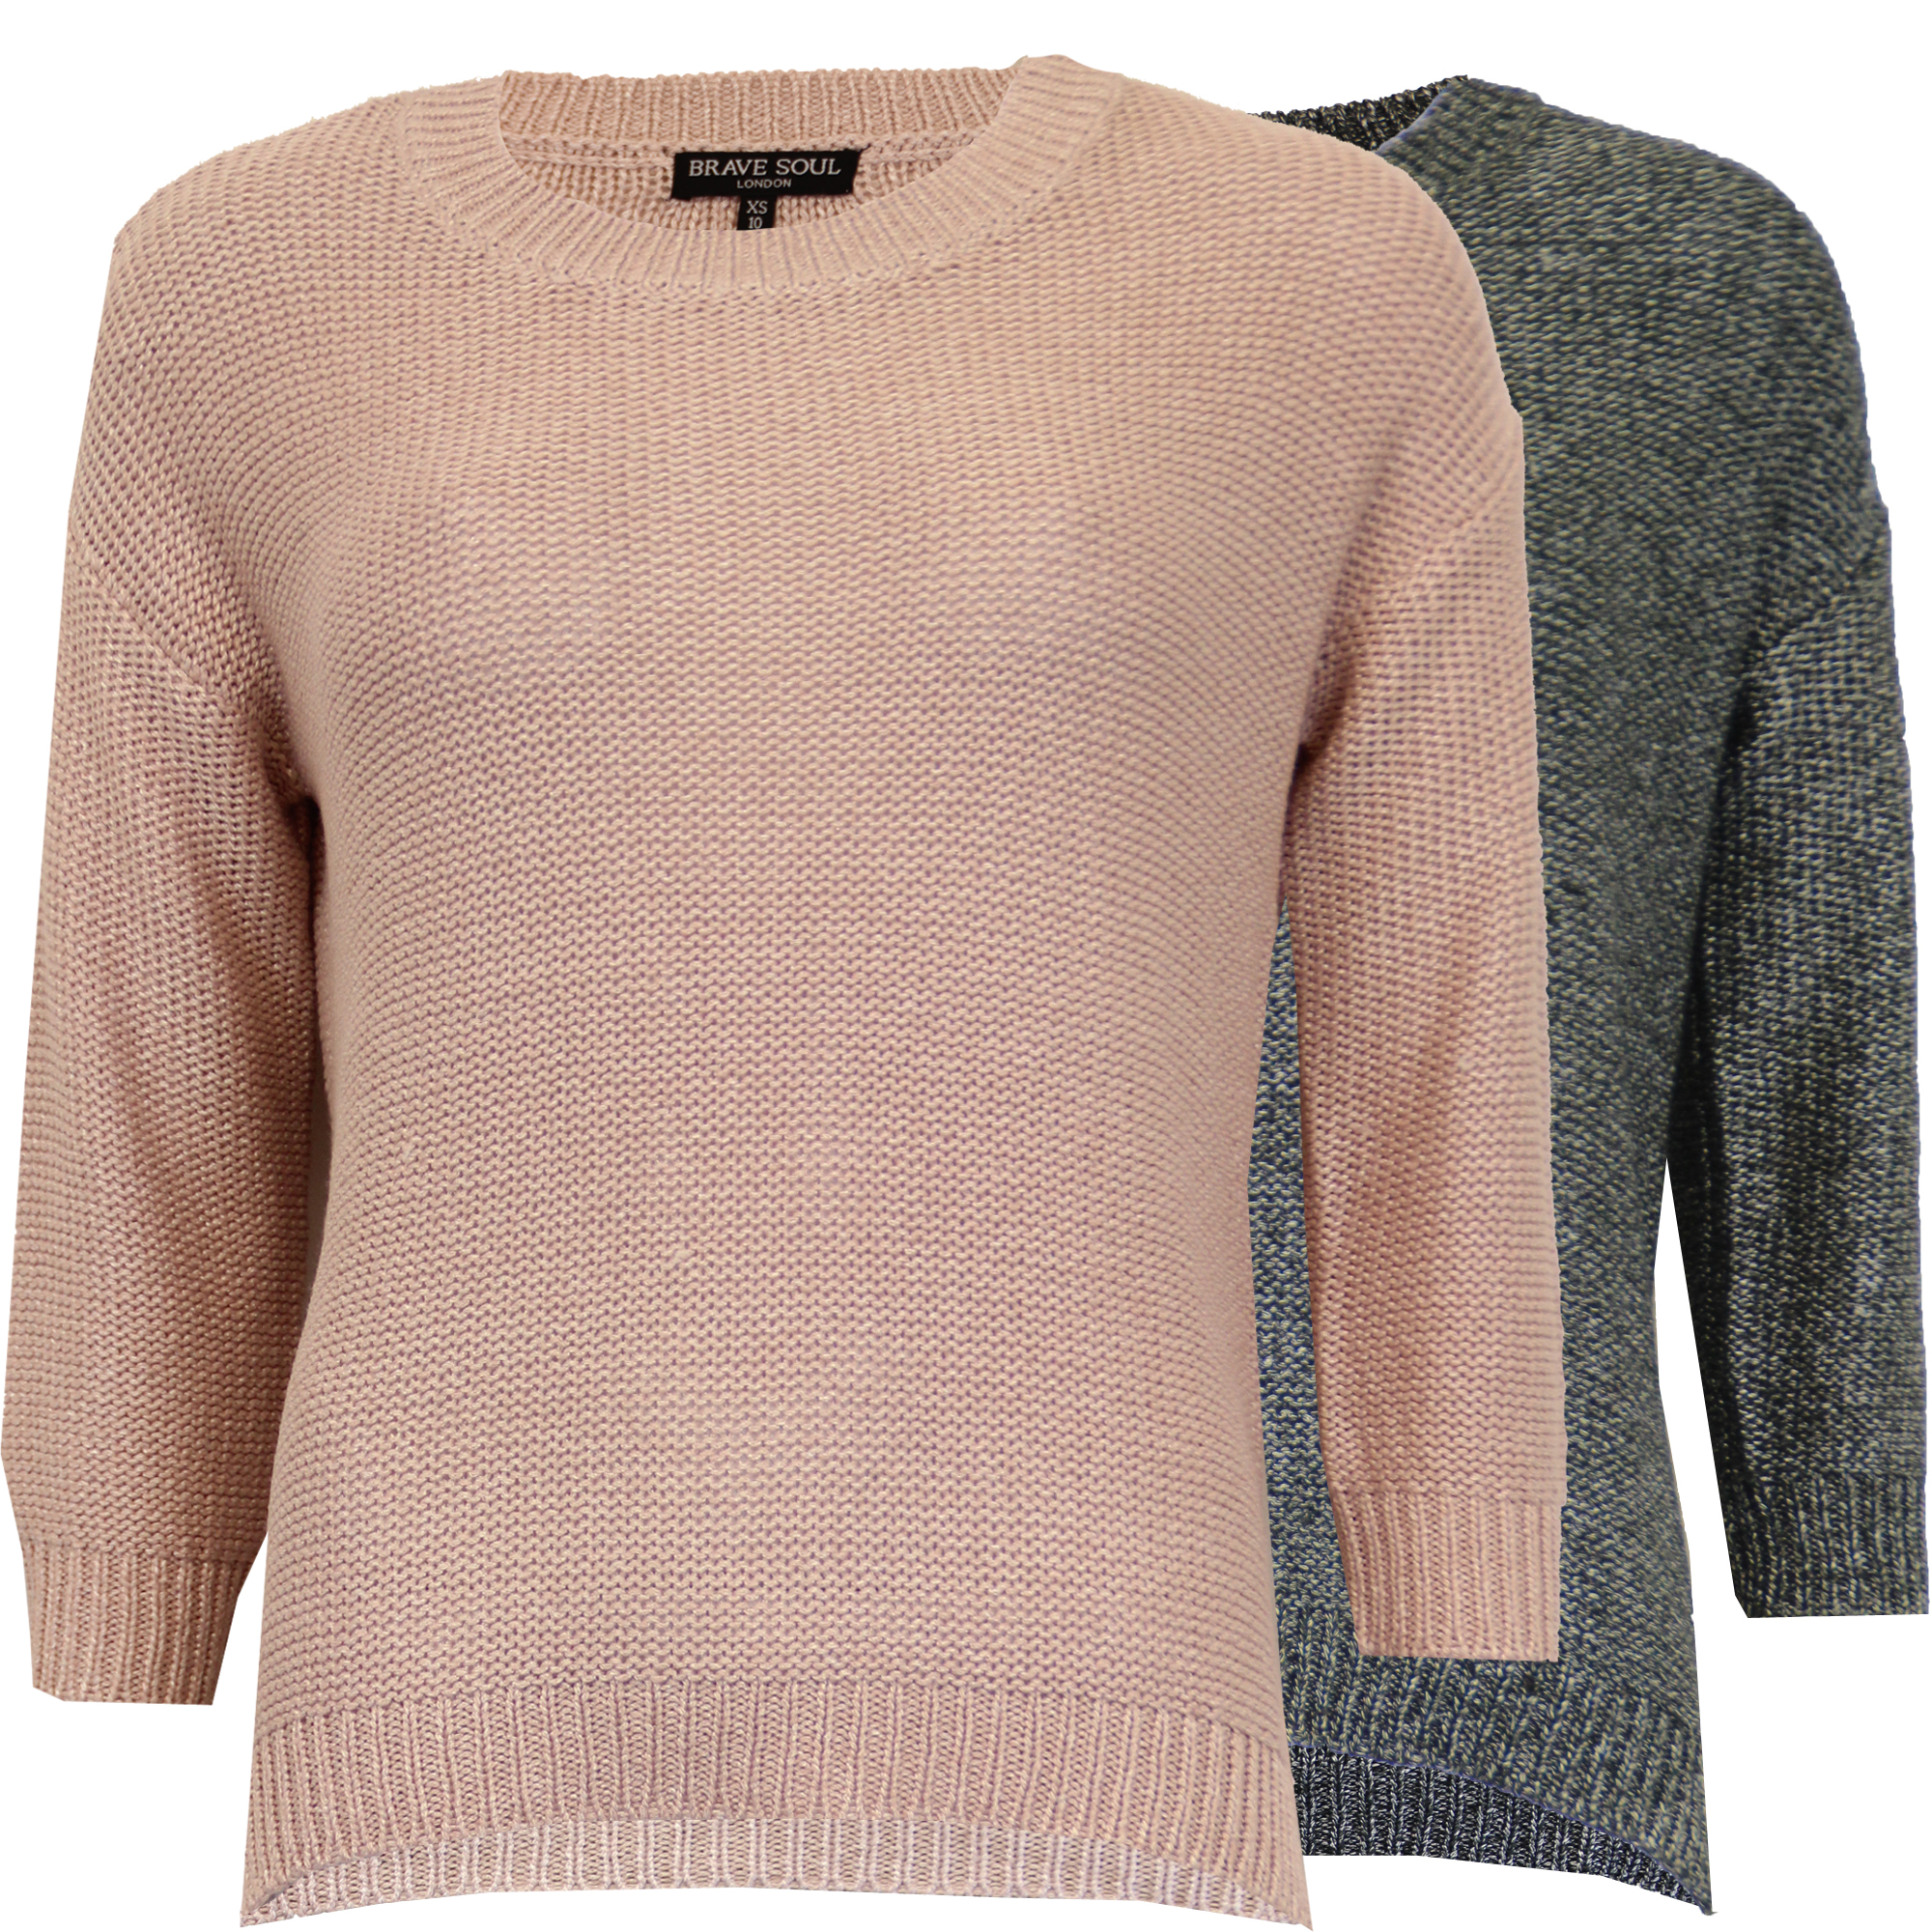 123fcbe410a7 Ladies Jumper Brave Soul Womens Knitted Sweater Crew Neck Top Casual ...